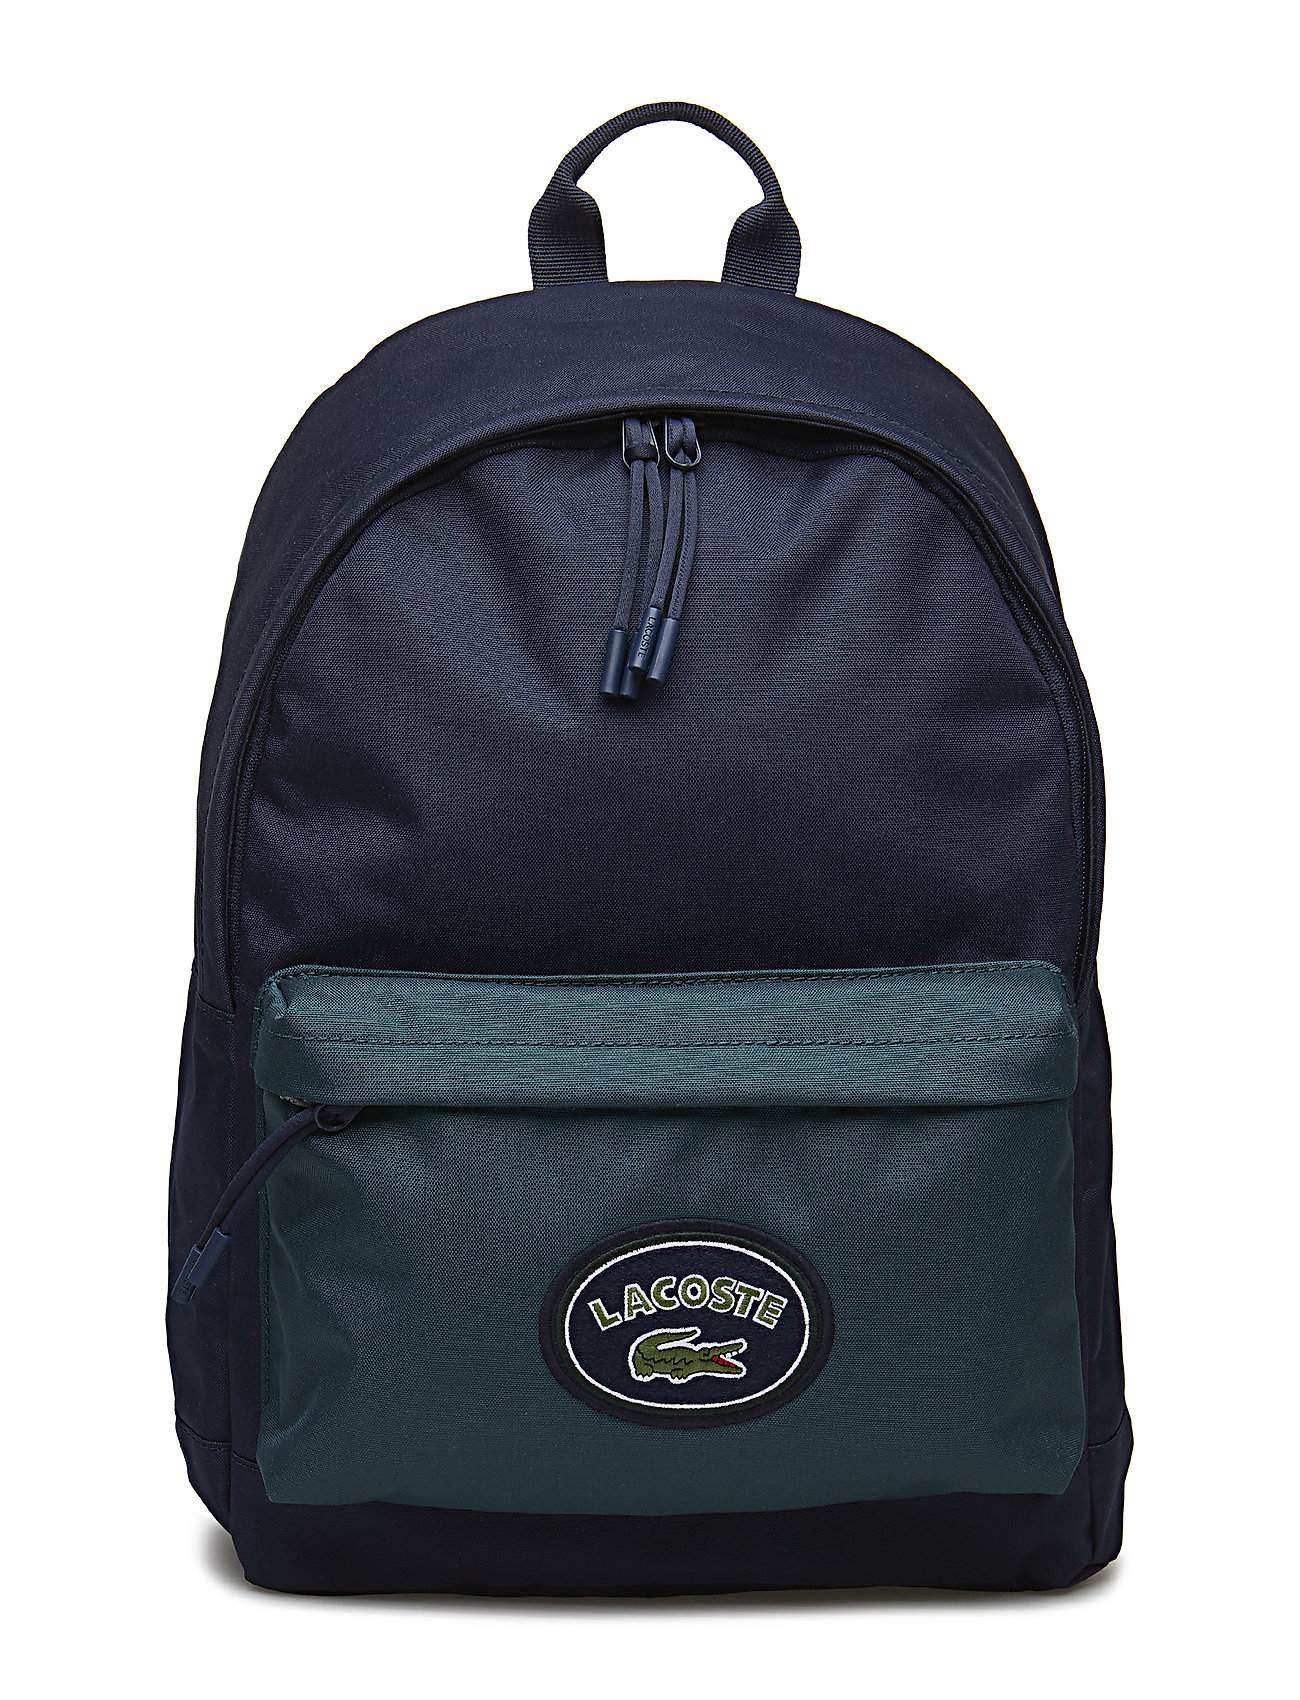 73741a595 Leather Goods Luggage (B63) (£59.40) - Lacoste Sport -